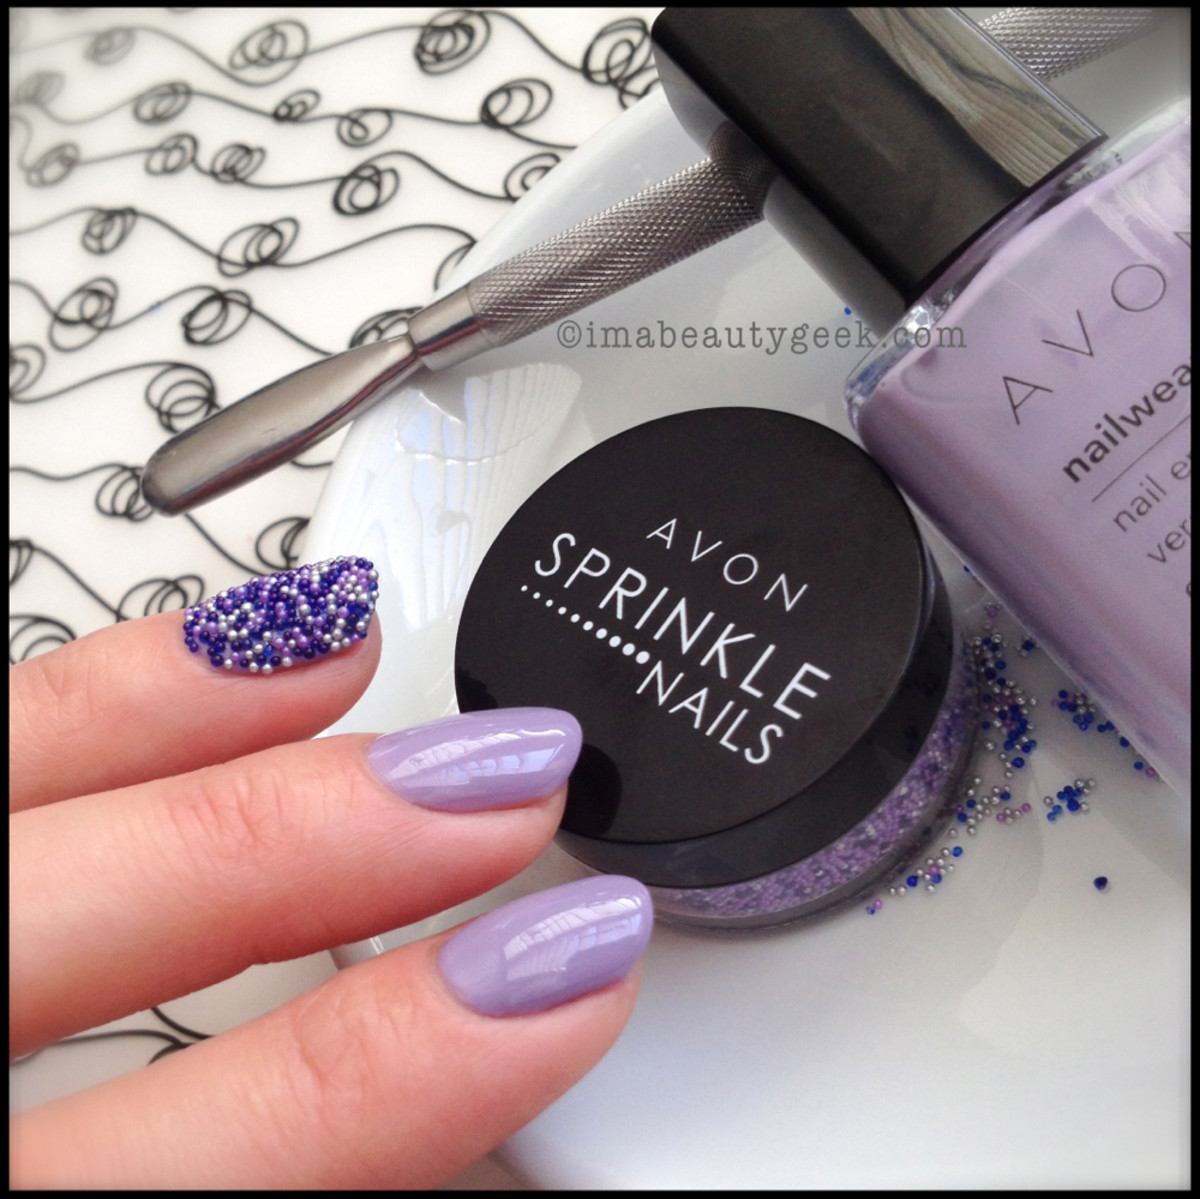 Avon Sprinkle Nails_6